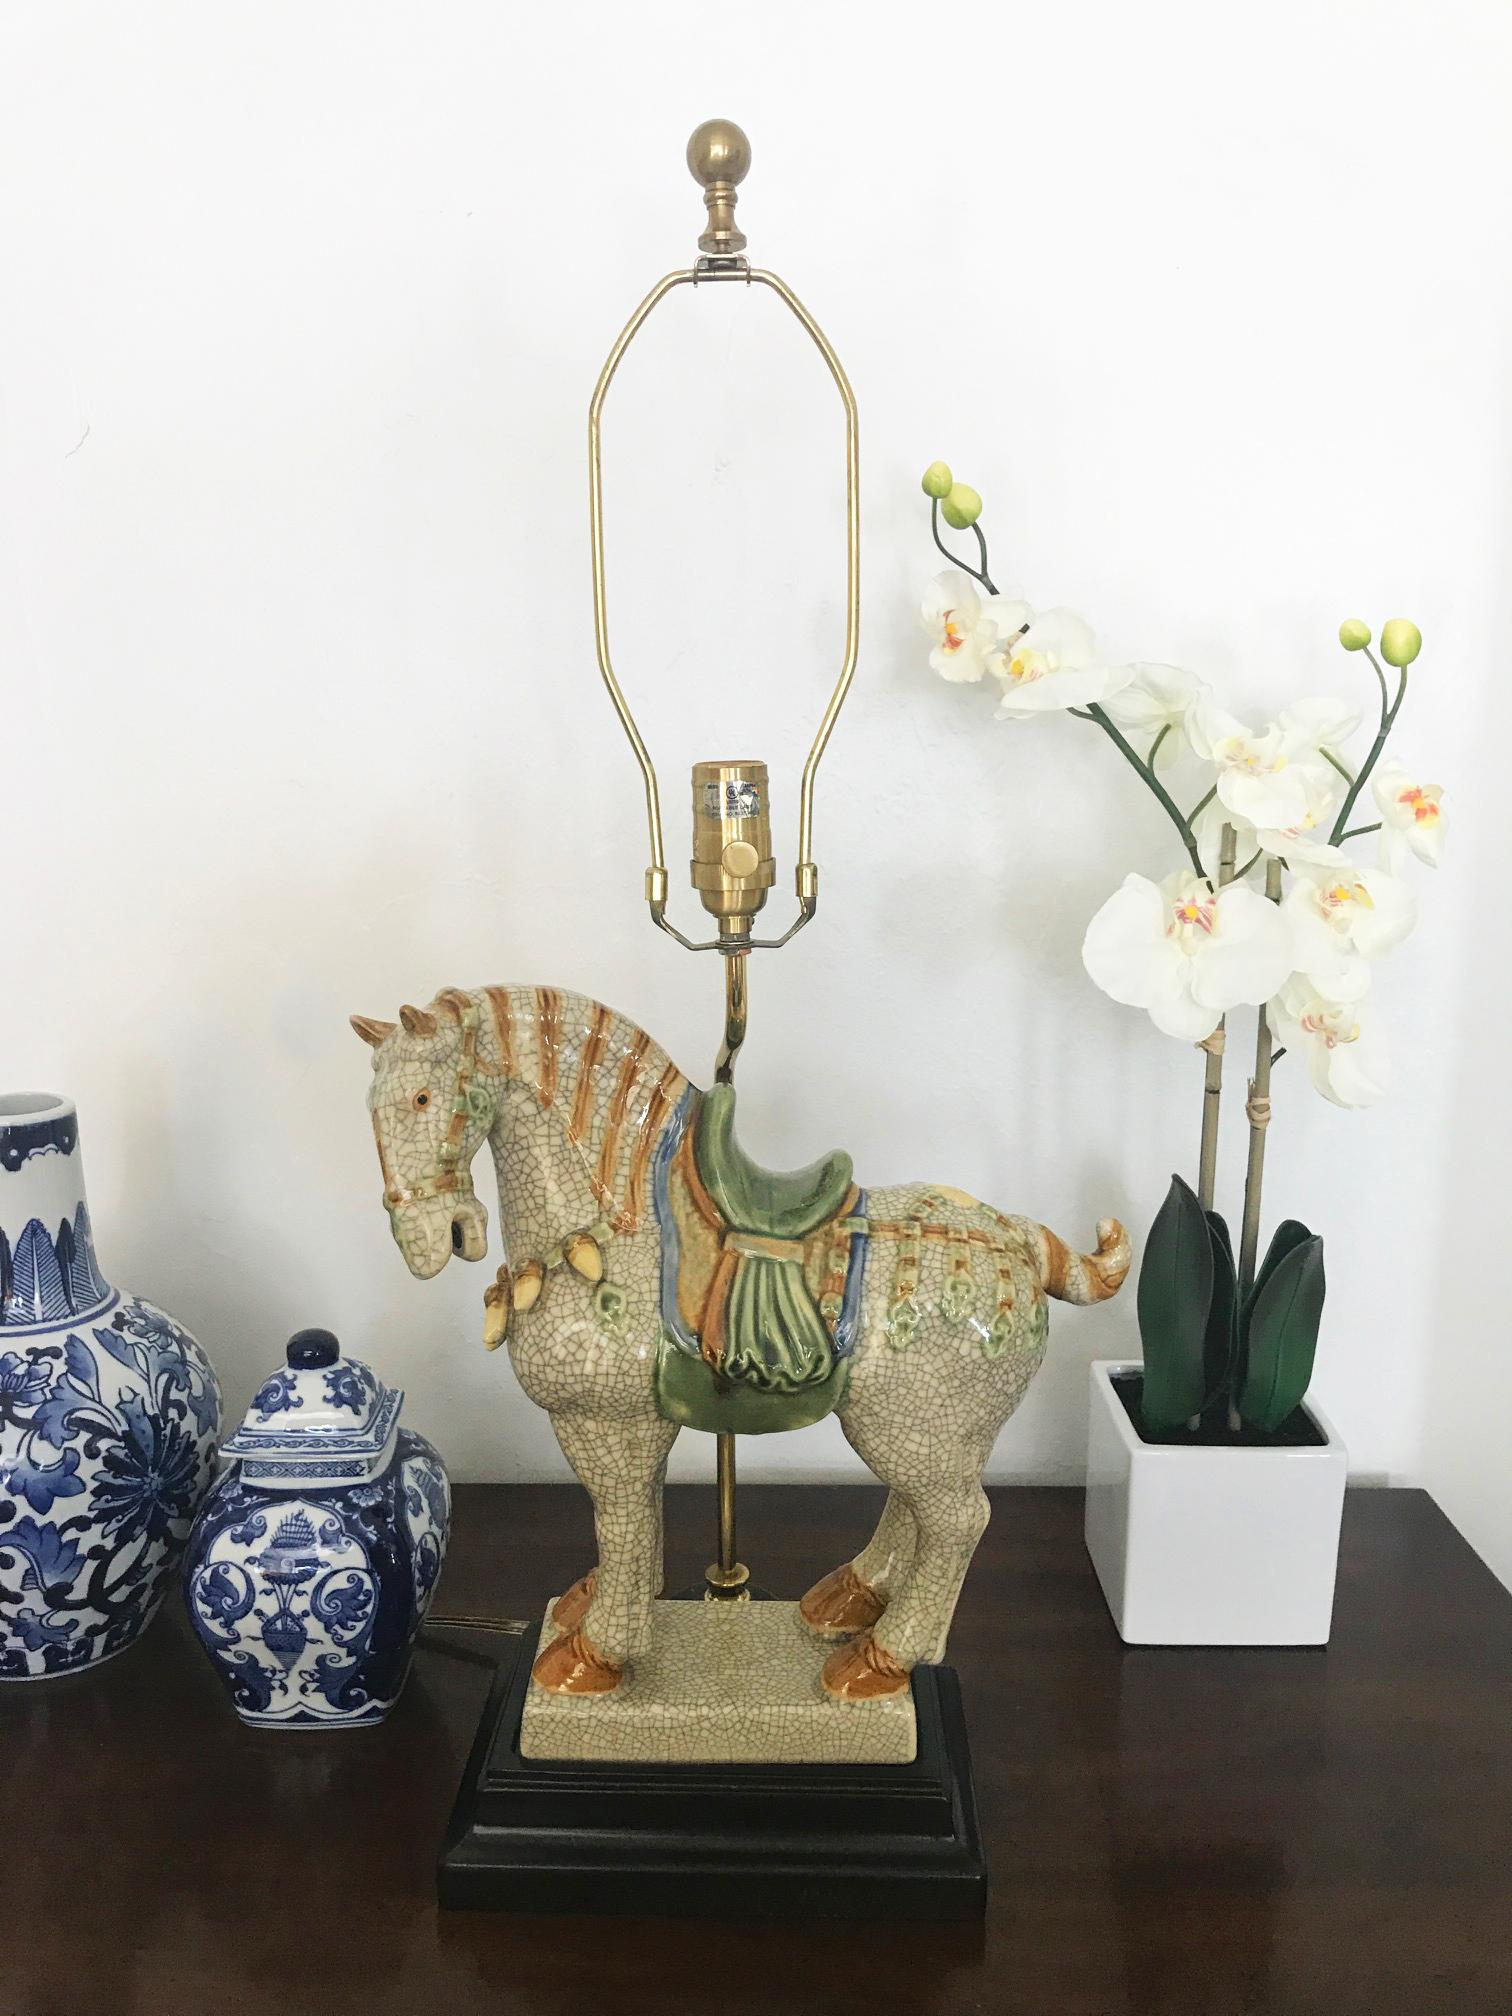 Chinoiserie Asian Style Ceramic War Horse Table L& - Image 2 of 6  sc 1 st  Chairish & Chinoiserie Asian Style Ceramic War Horse Table Lamp | Chairish azcodes.com